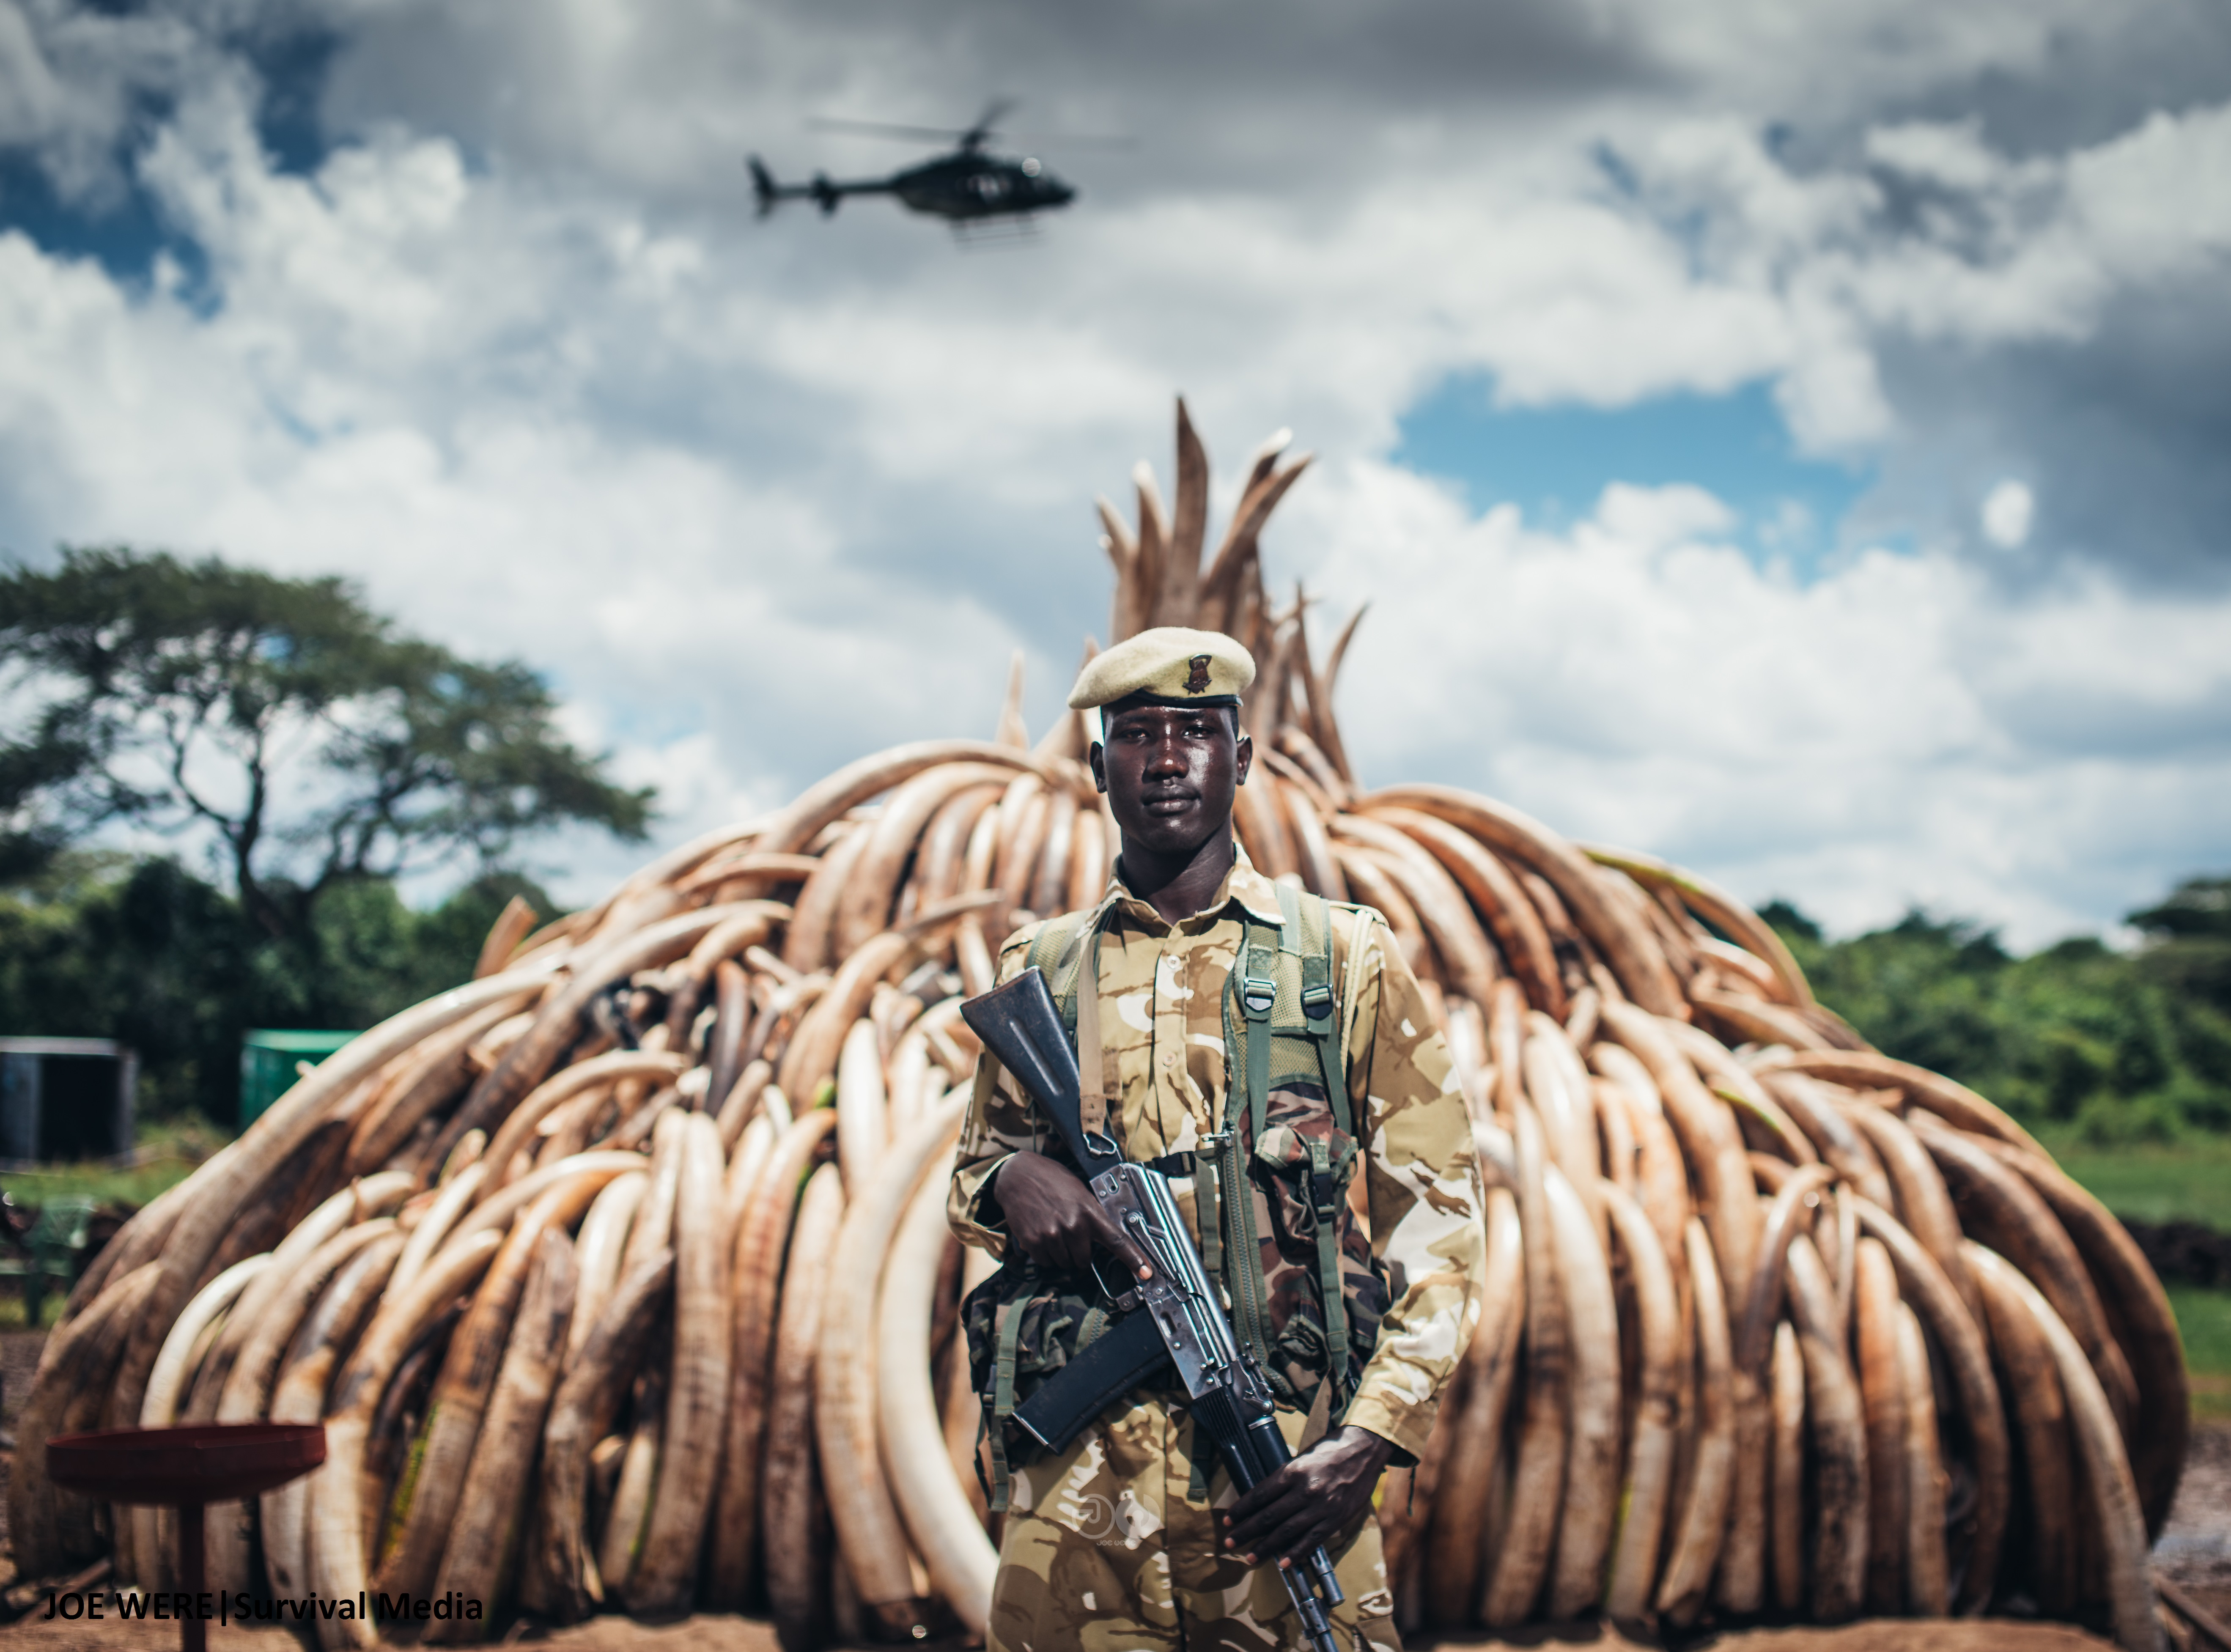 Ranger Moses of the Kenya Wildlife Service watching over a stockpile of confiscated ivory. 105 tonnes of Elephant Ivory seized, 1 tonne of Rhino horn confiscated... Over 10,000 elephants killed that deprives Kenya up to $17b in tourism revenue. 